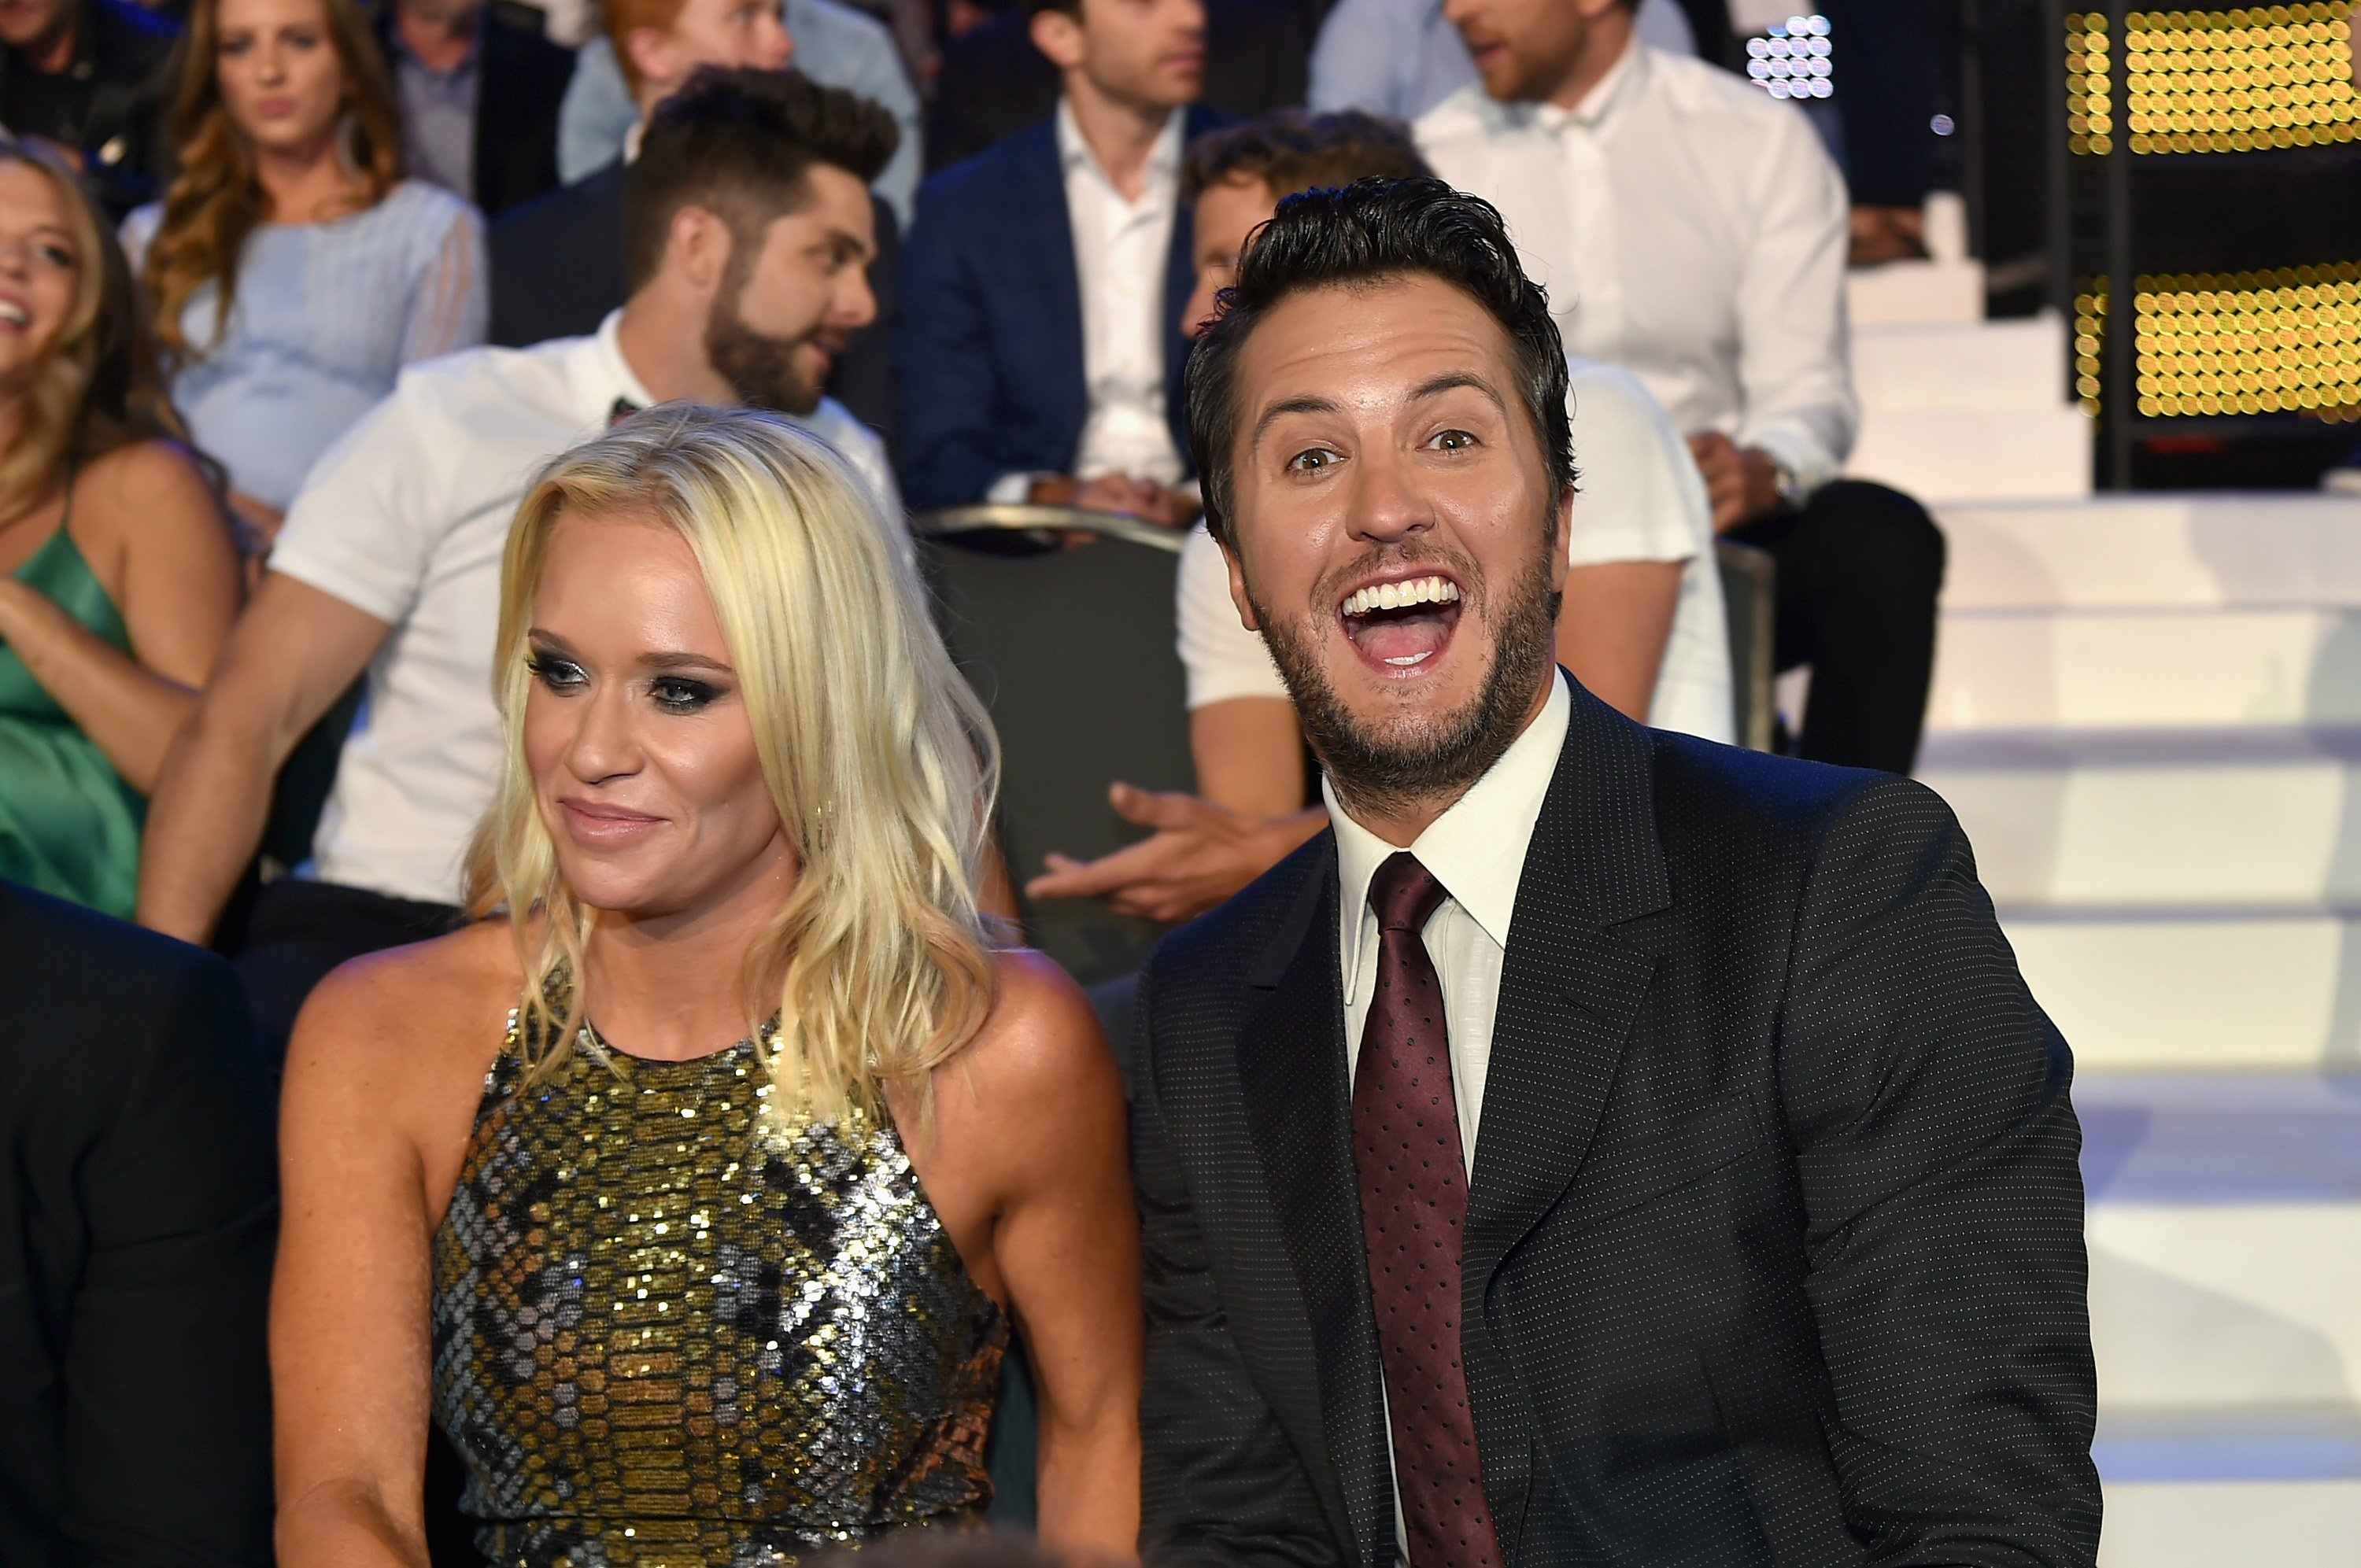 Luke Bryan at the 2017 CMT Music Awards at the Music City Center. Photo: Getty Images/Global Images Ukraine